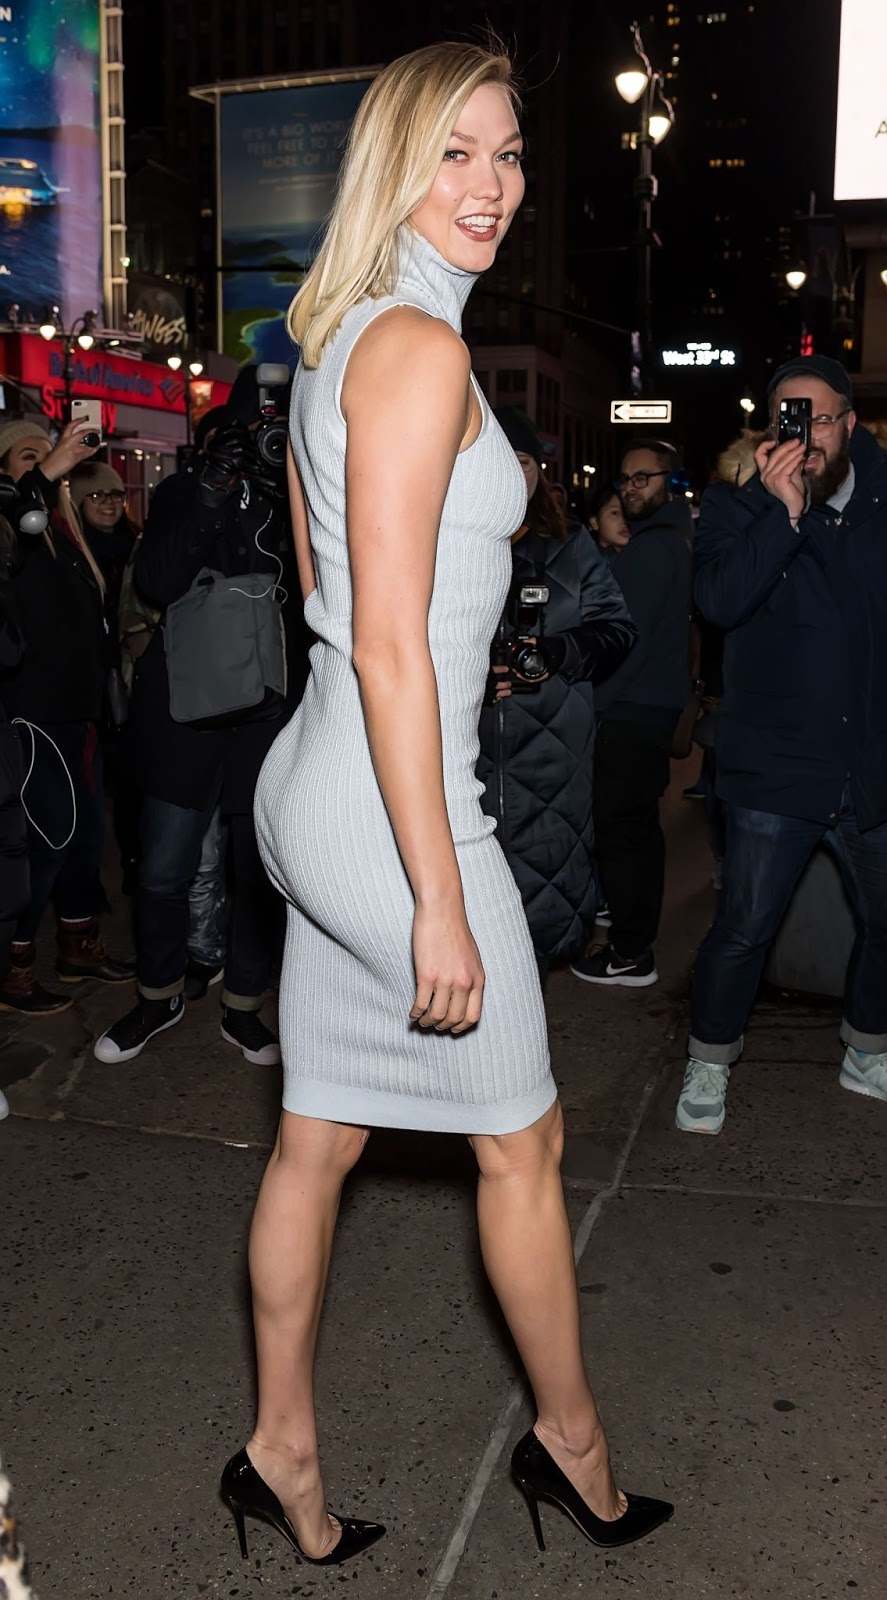 Karlie Kloss - Exits Brandon Maxwell's show during NYFW in NYC - 02/10/2019